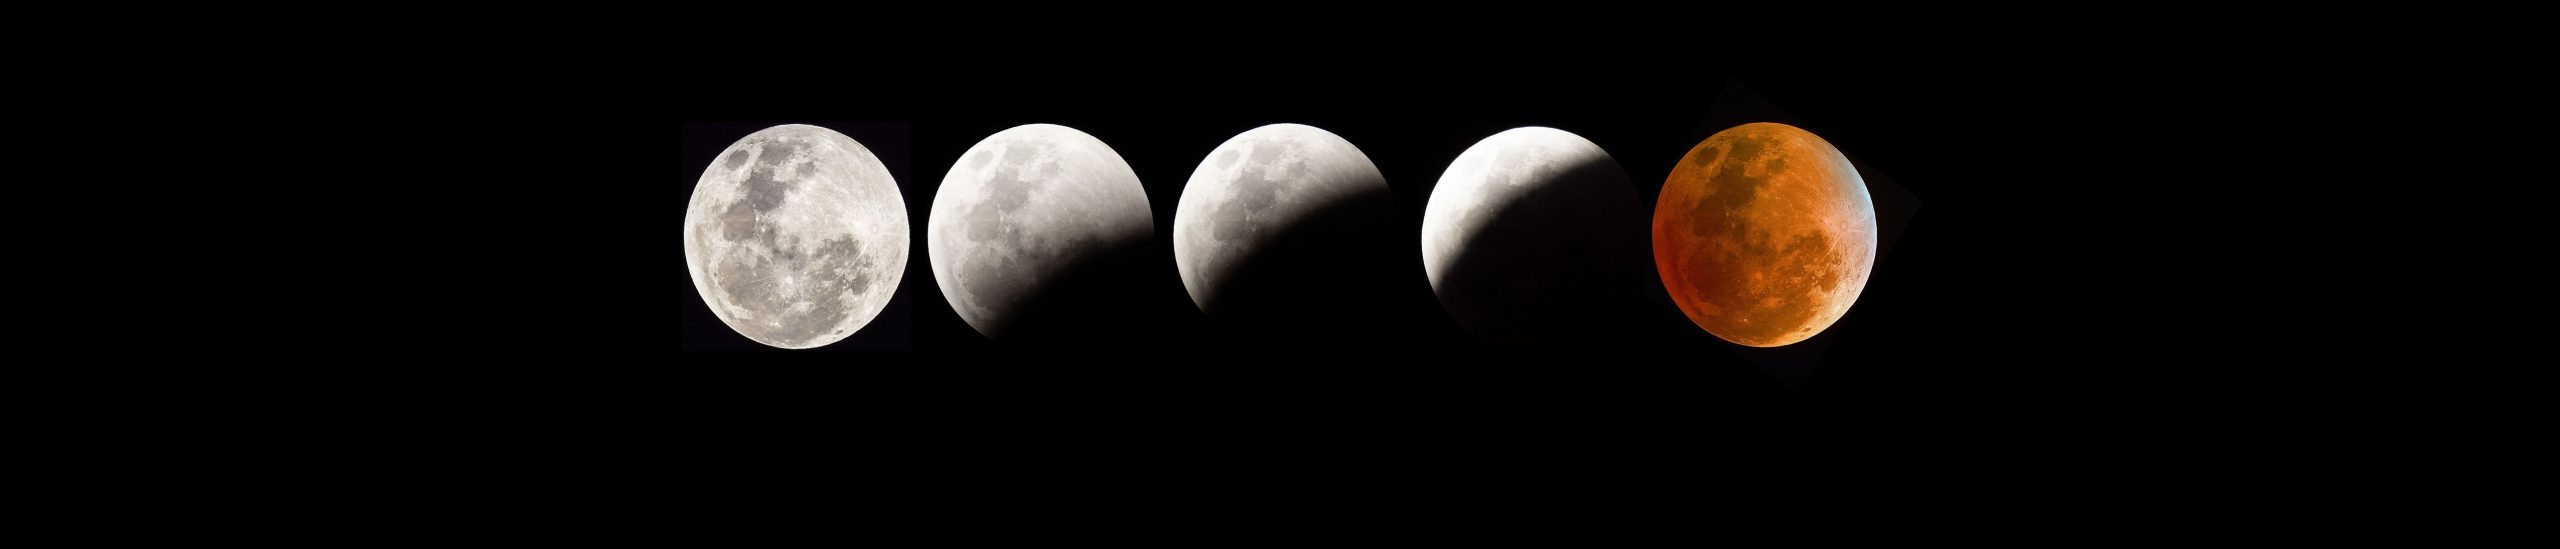 blood-moon-eclipse-3572756